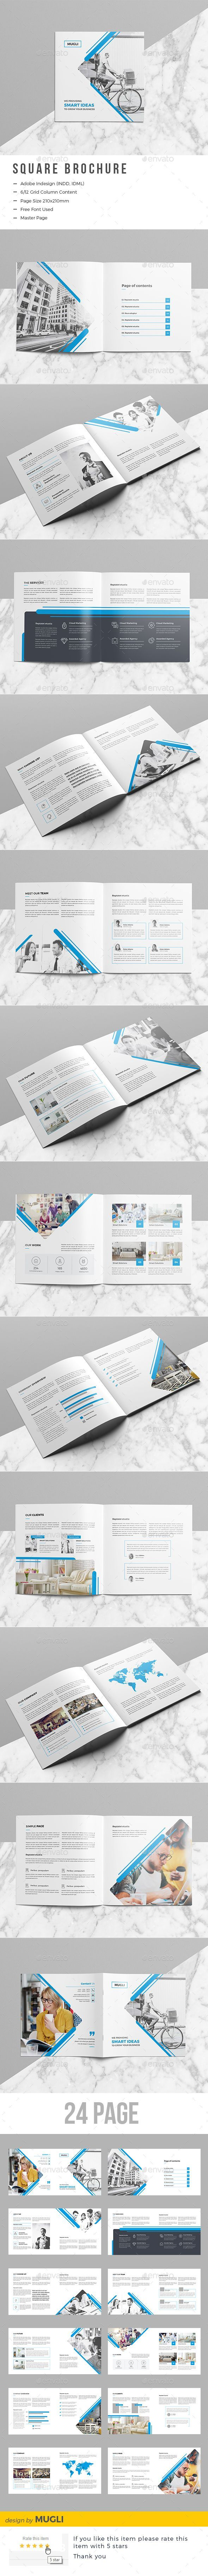 Square Brochure  -  InDesign INDD #square #creative•下载➝https://graphicriver.net/item/square-brochure/19568308?ref=pxcr